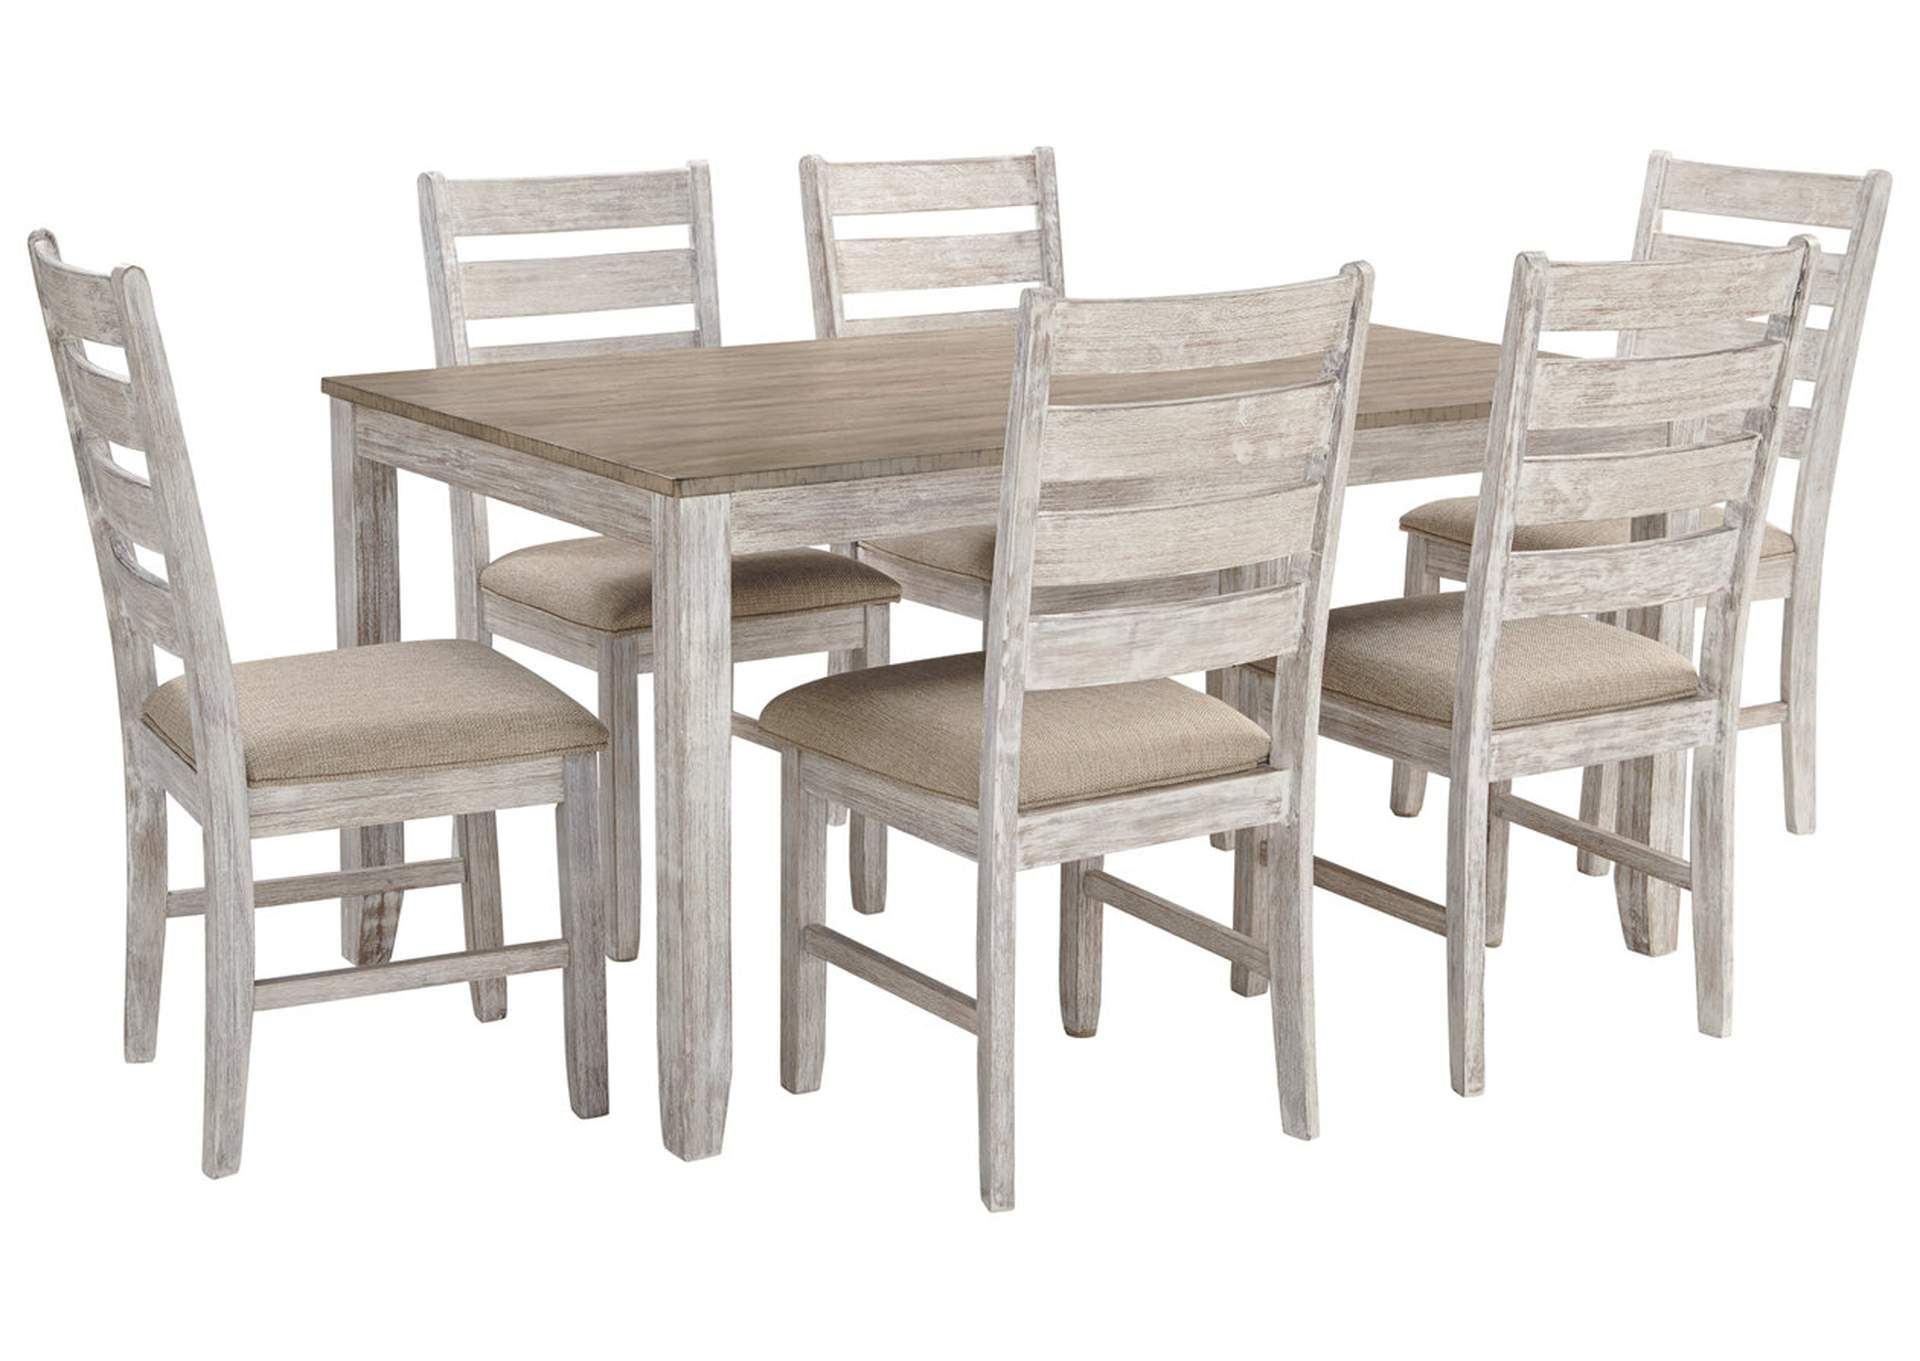 Skempton 7 Piece Dining Table Set,Signature Design By Ashley